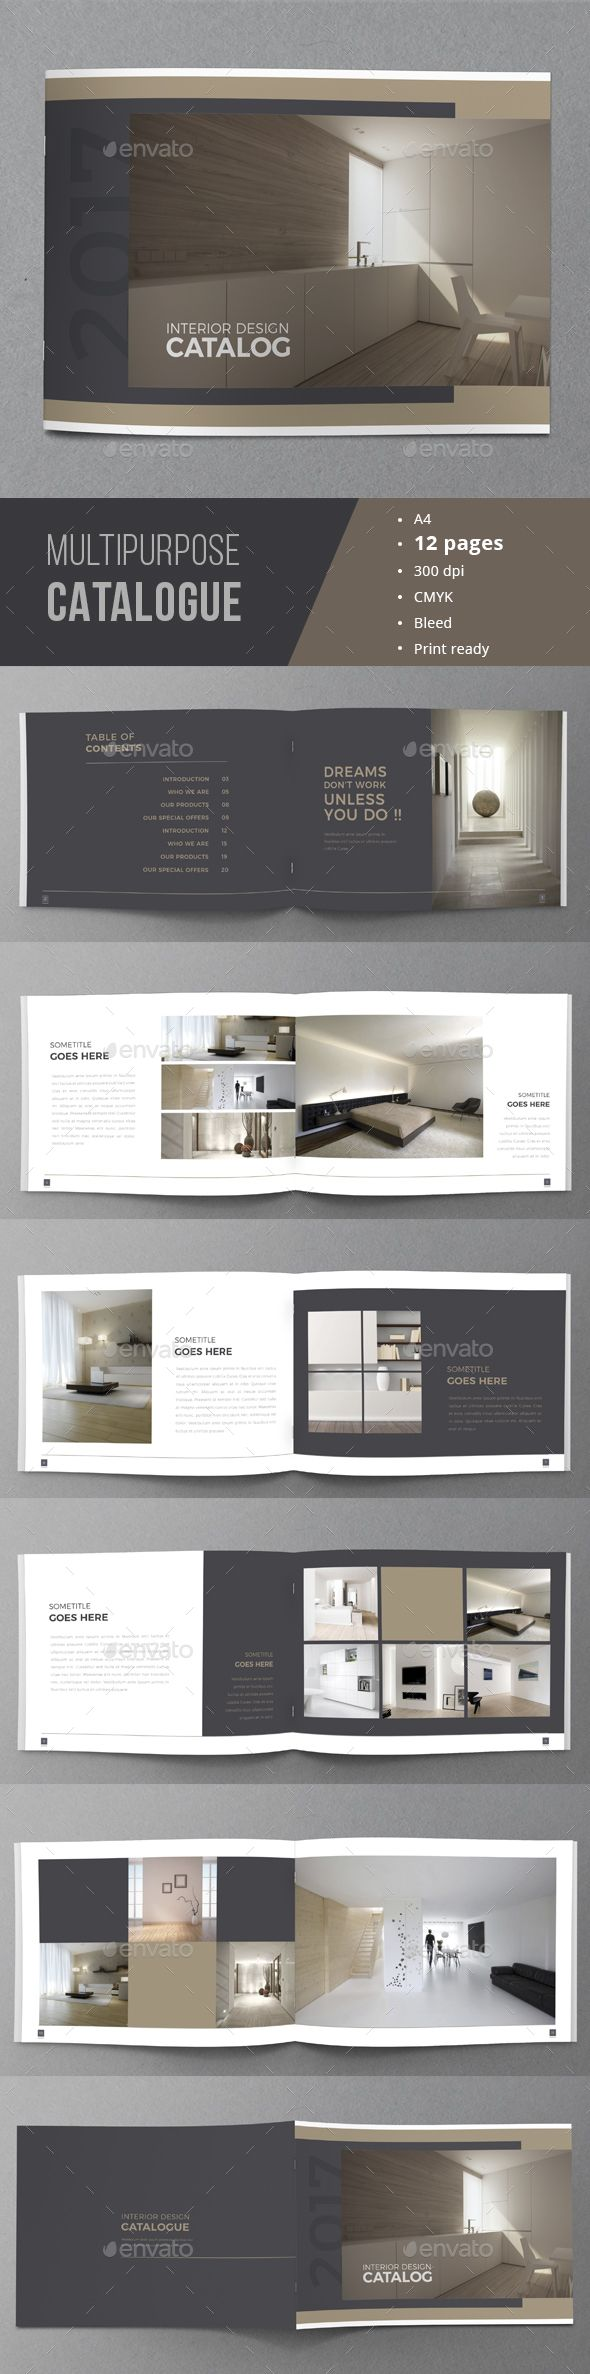 best 20+ luxury brochure ideas on pinterest | portfolio layout